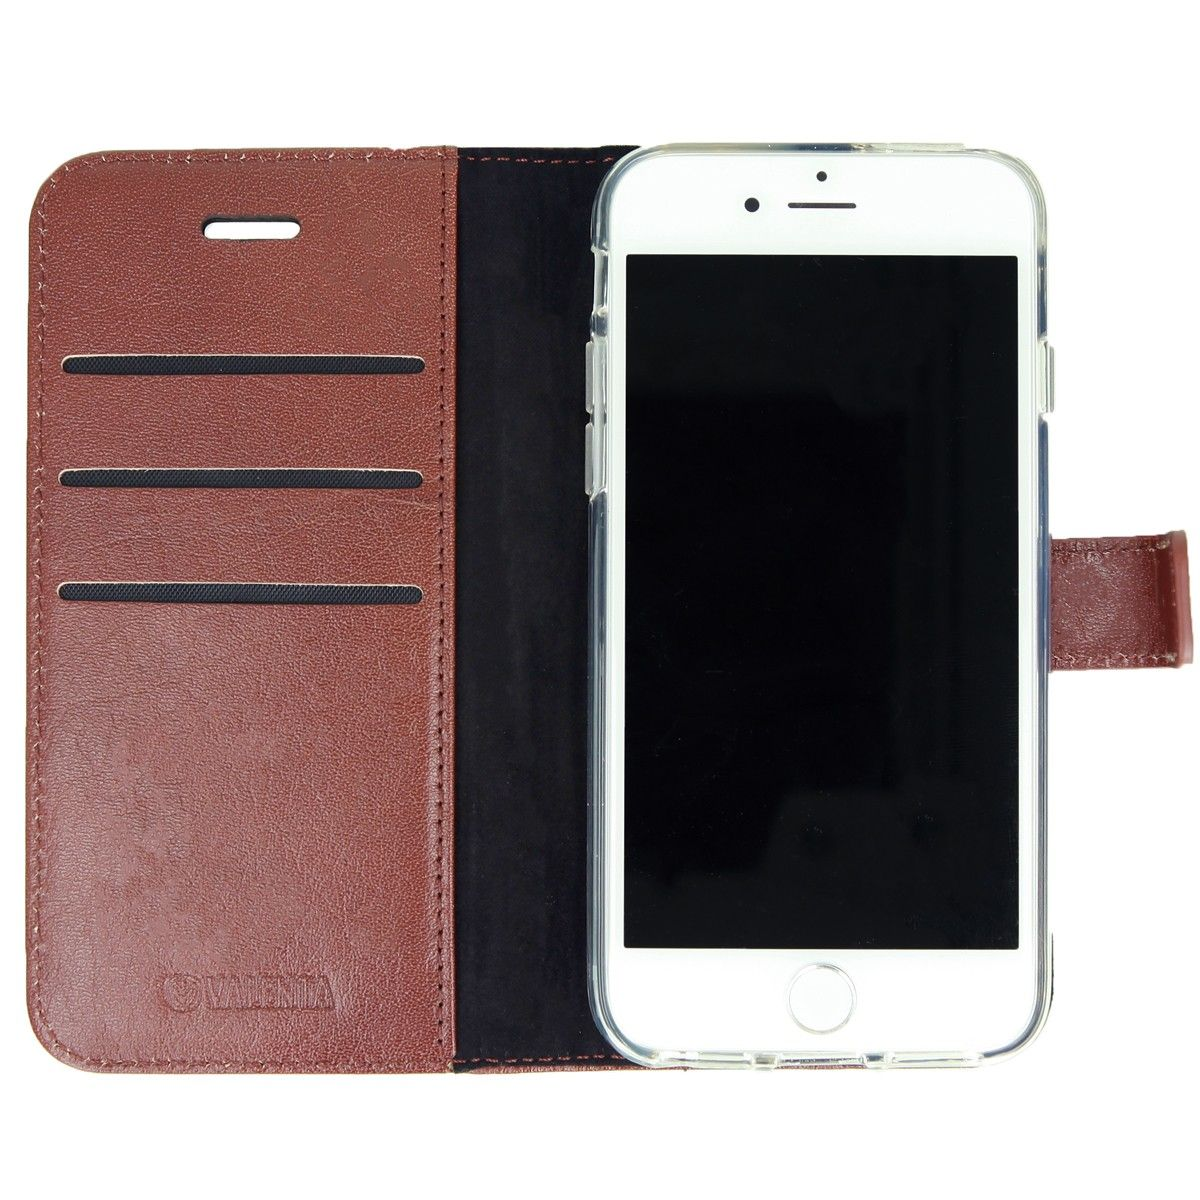 valenta booklet leather brown gel skin iphone 78se 2020